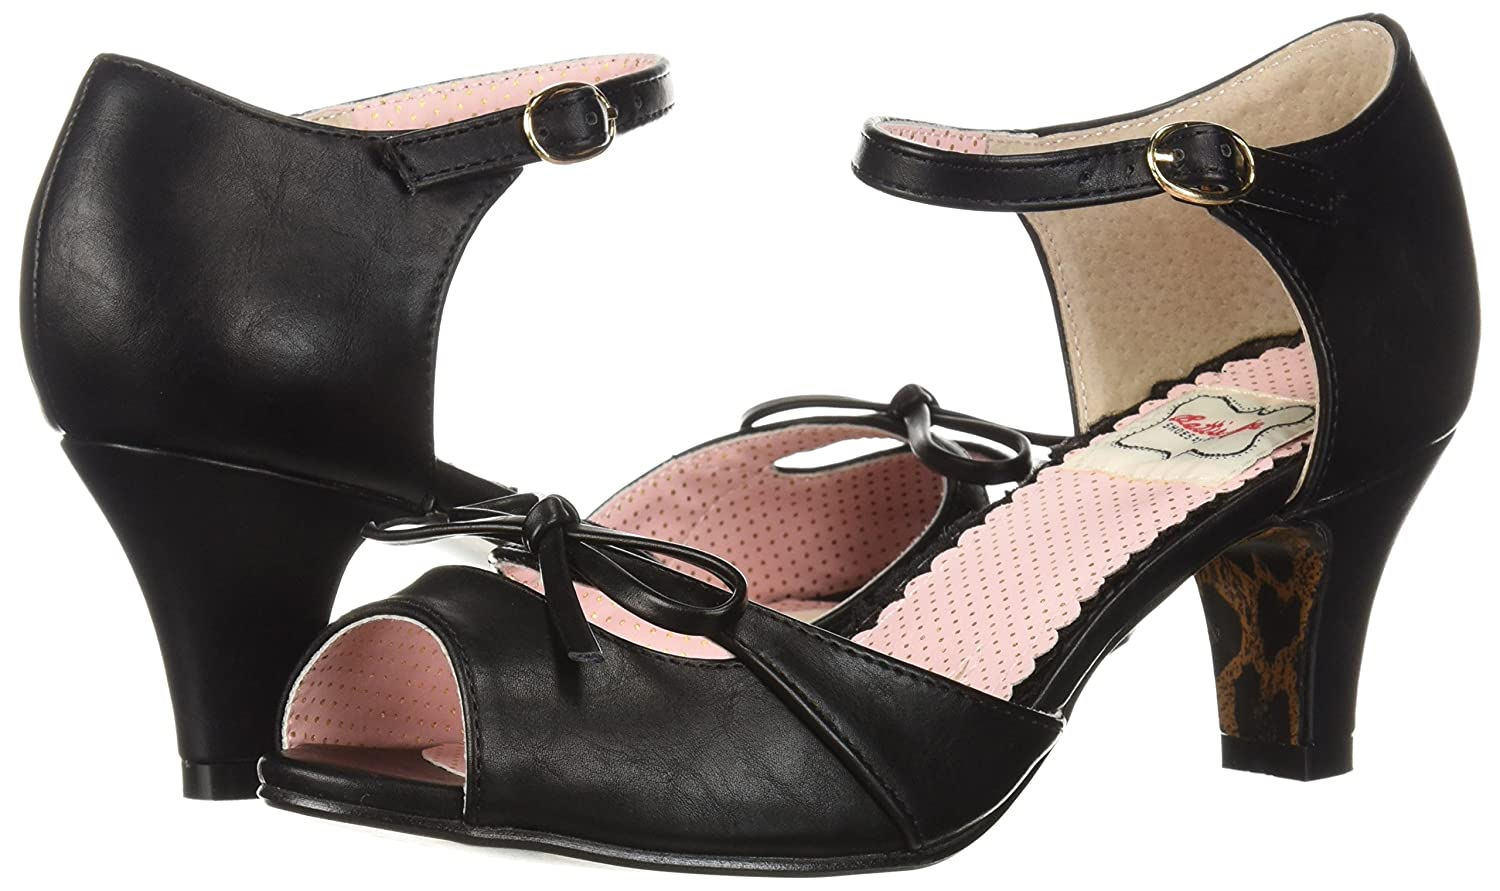 Rockabilly Shoes- Heels, Pumps, Boots, Flats Bettie Page Womens Bp250-tegan Heeled Sandal $68.60 AT vintagedancer.com